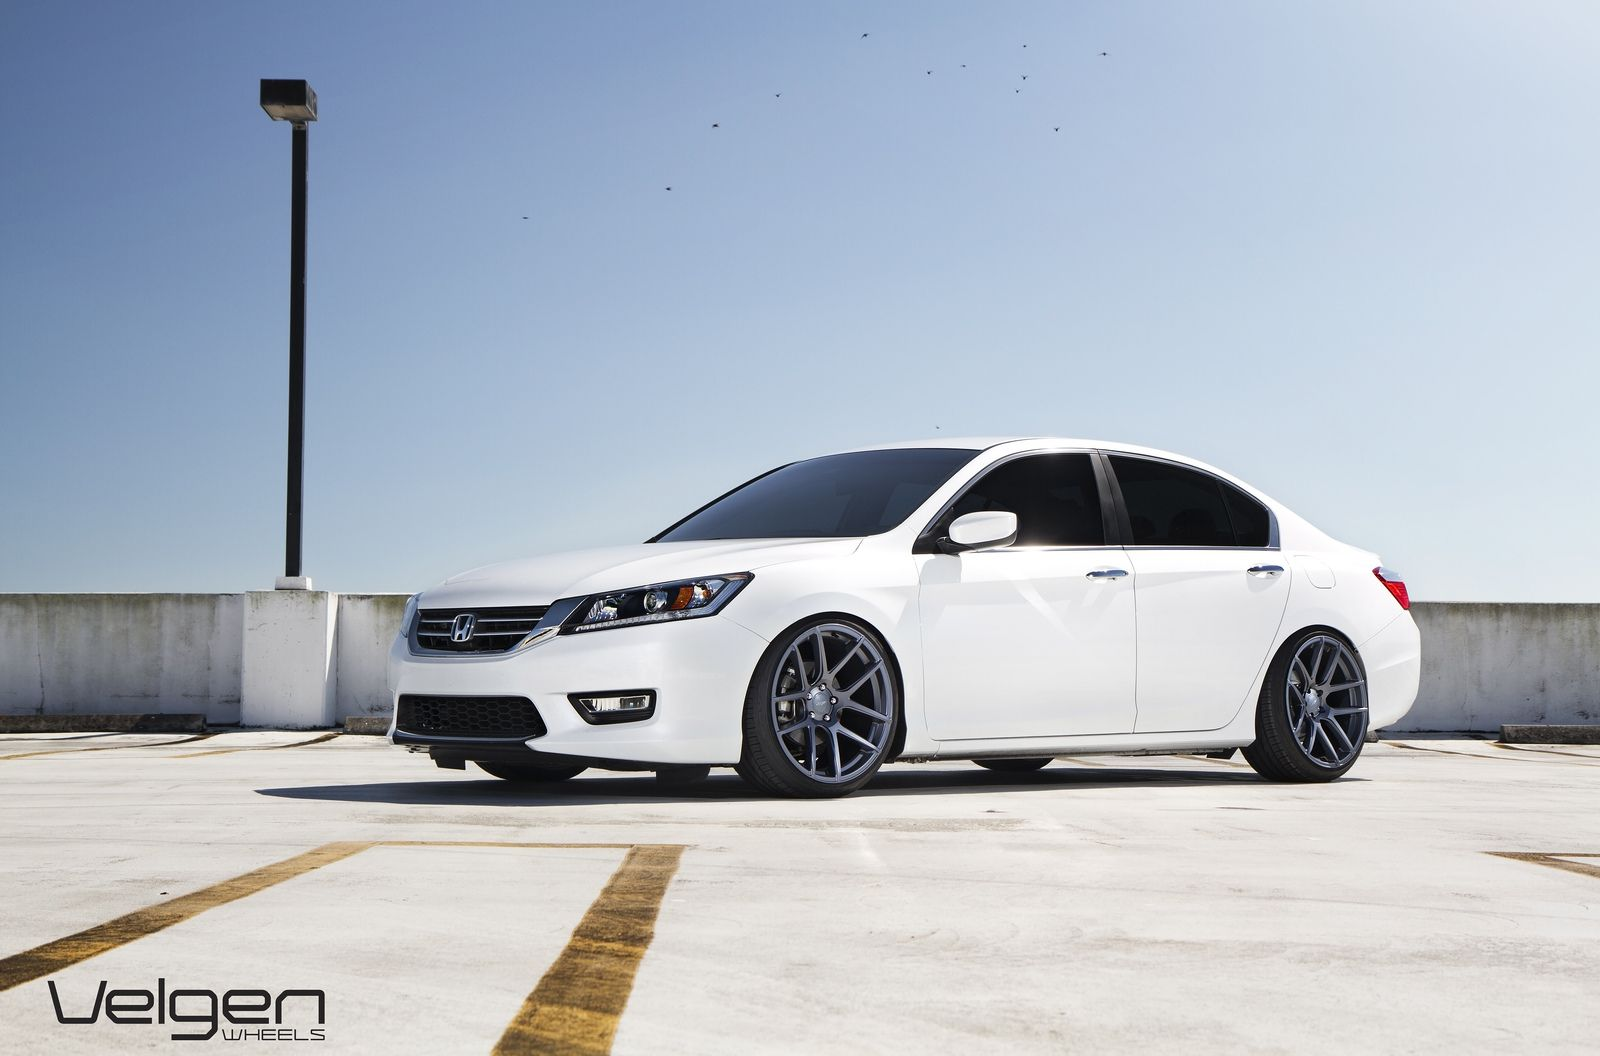 HONDA ACCORD SPORT VELGEN WHEELS VMB5 CONCAVE  Wheel Ideas